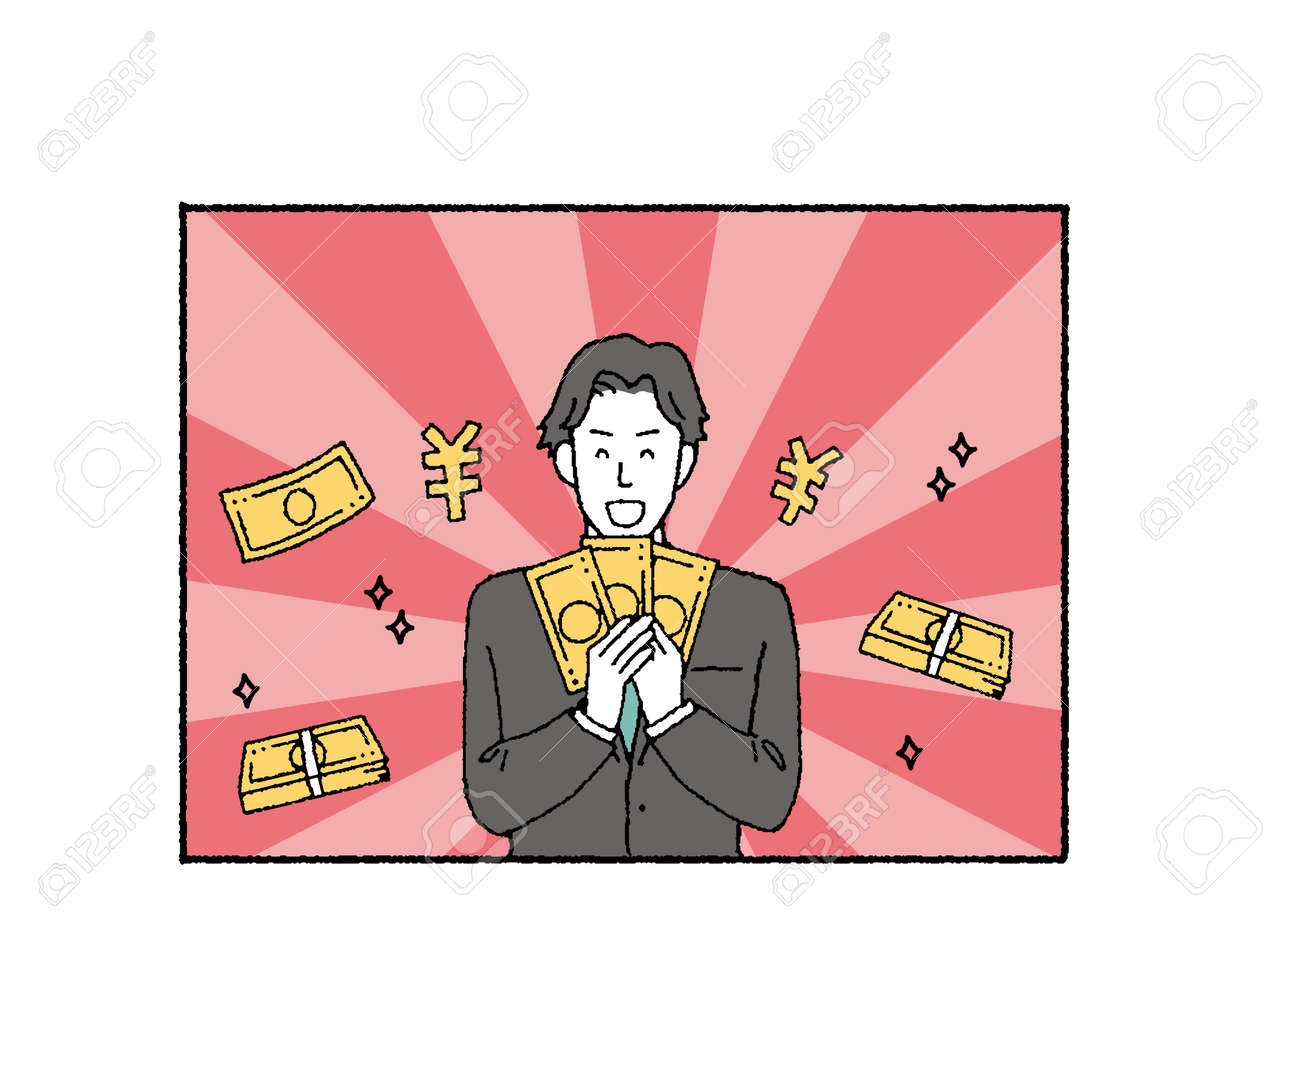 Illustration of businessman with tag with background  - 164800860